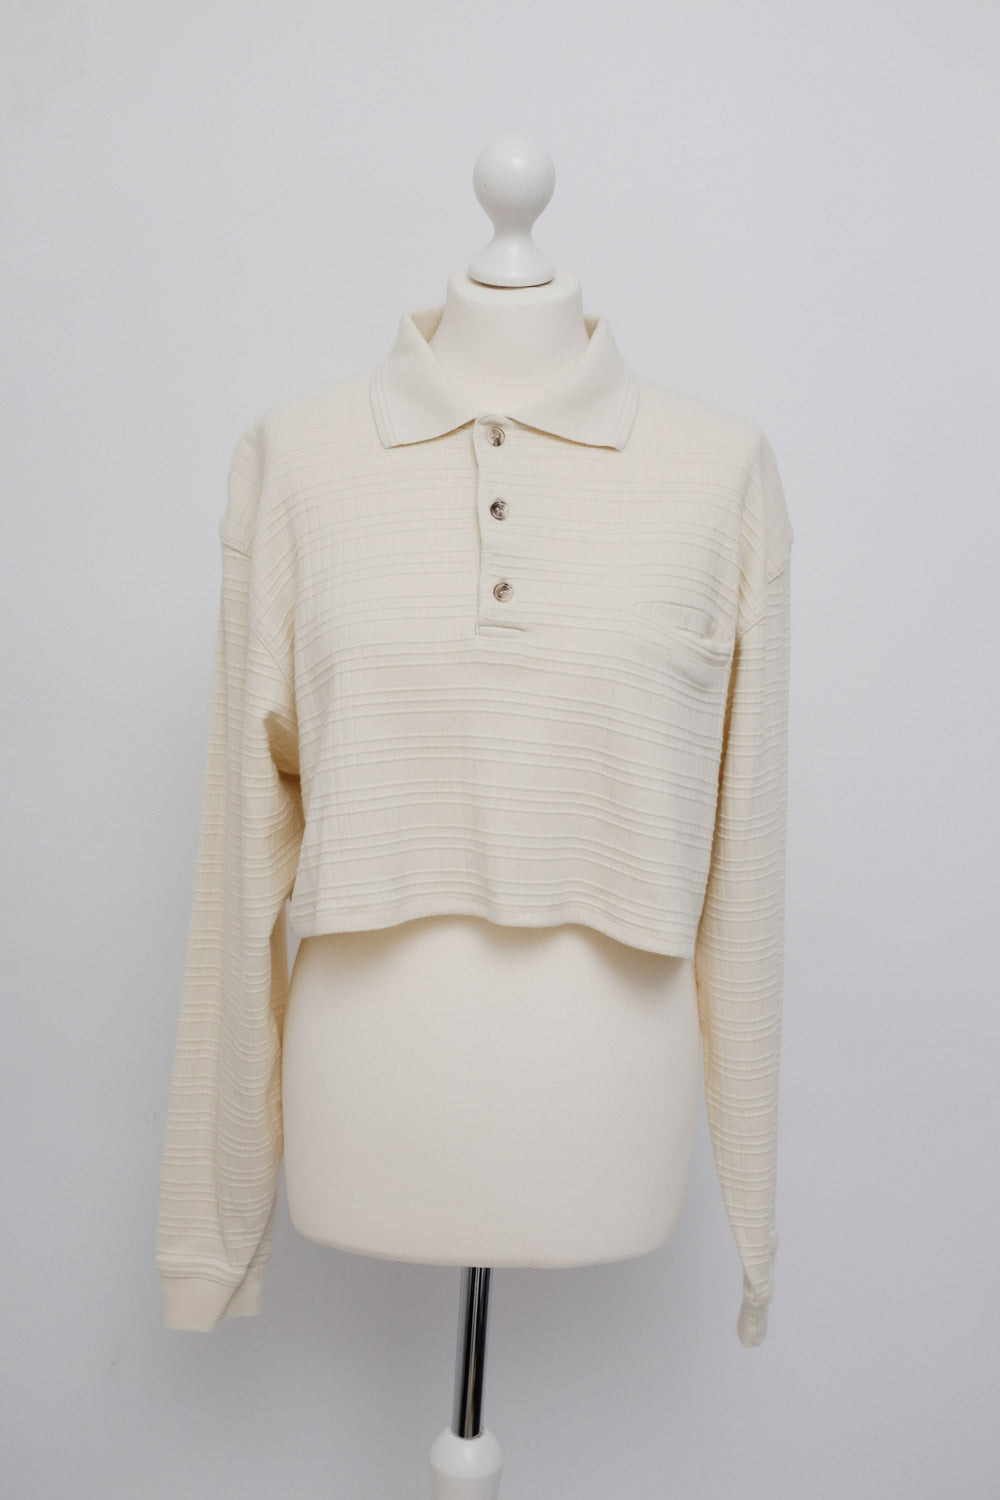 0026_CROP VINTAGE SWEATER SHIRT